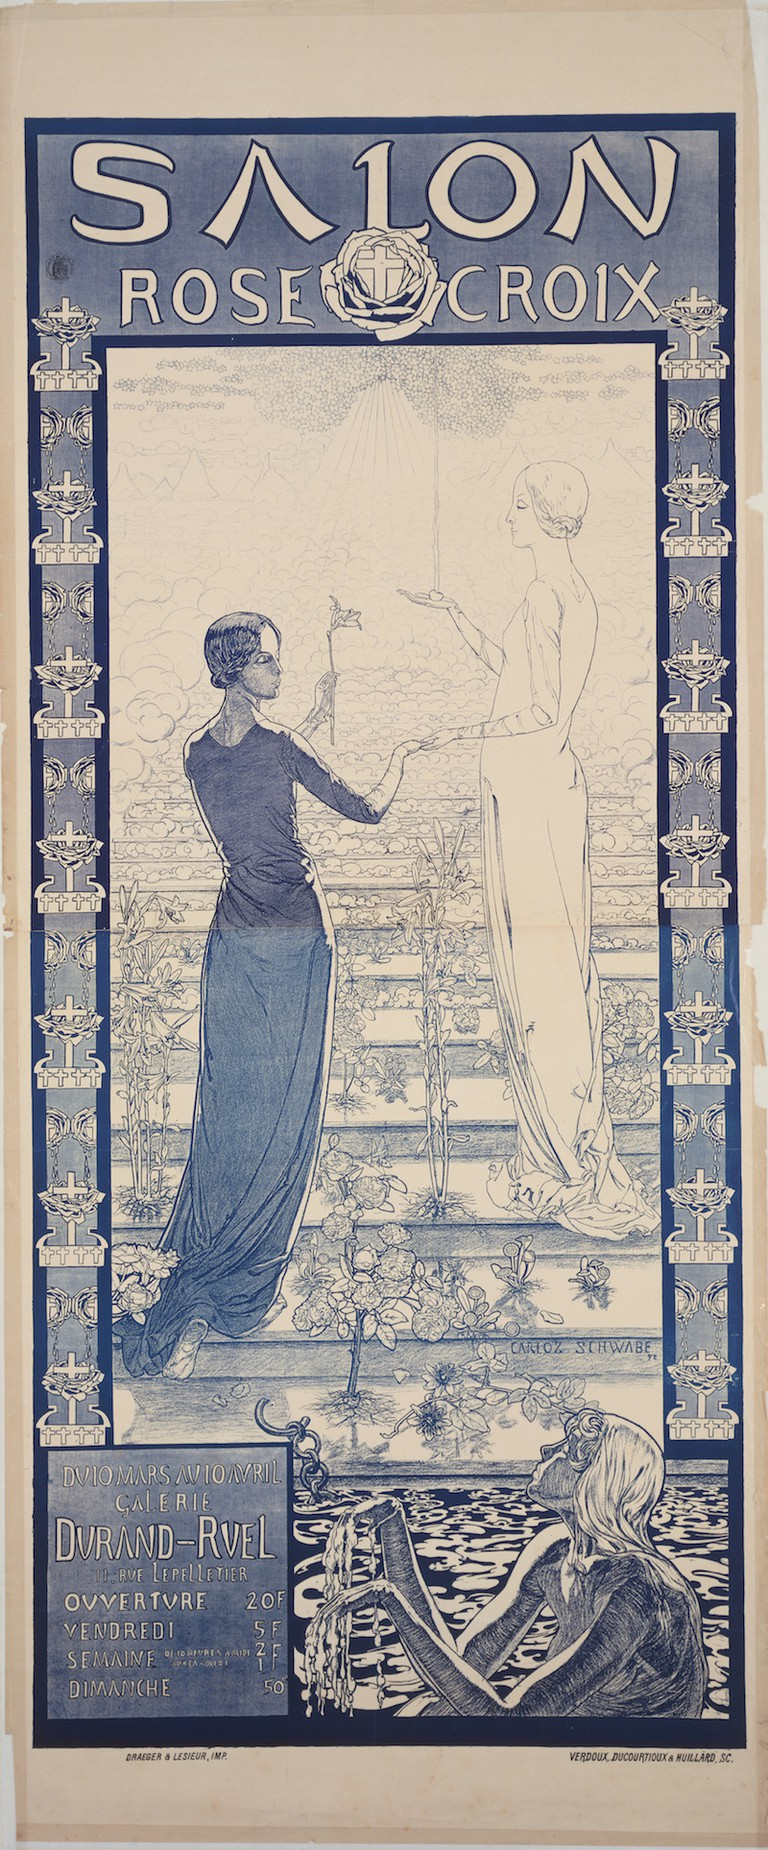 Carlos Schwabe Poster for the First Salon de la Rose+Croix, 1892. The Museum of Modern Art, New York, Given anonymously, 1987. Digital image © The Museum of Modern Art/Licensed by SCALA/Art Resource, New York.